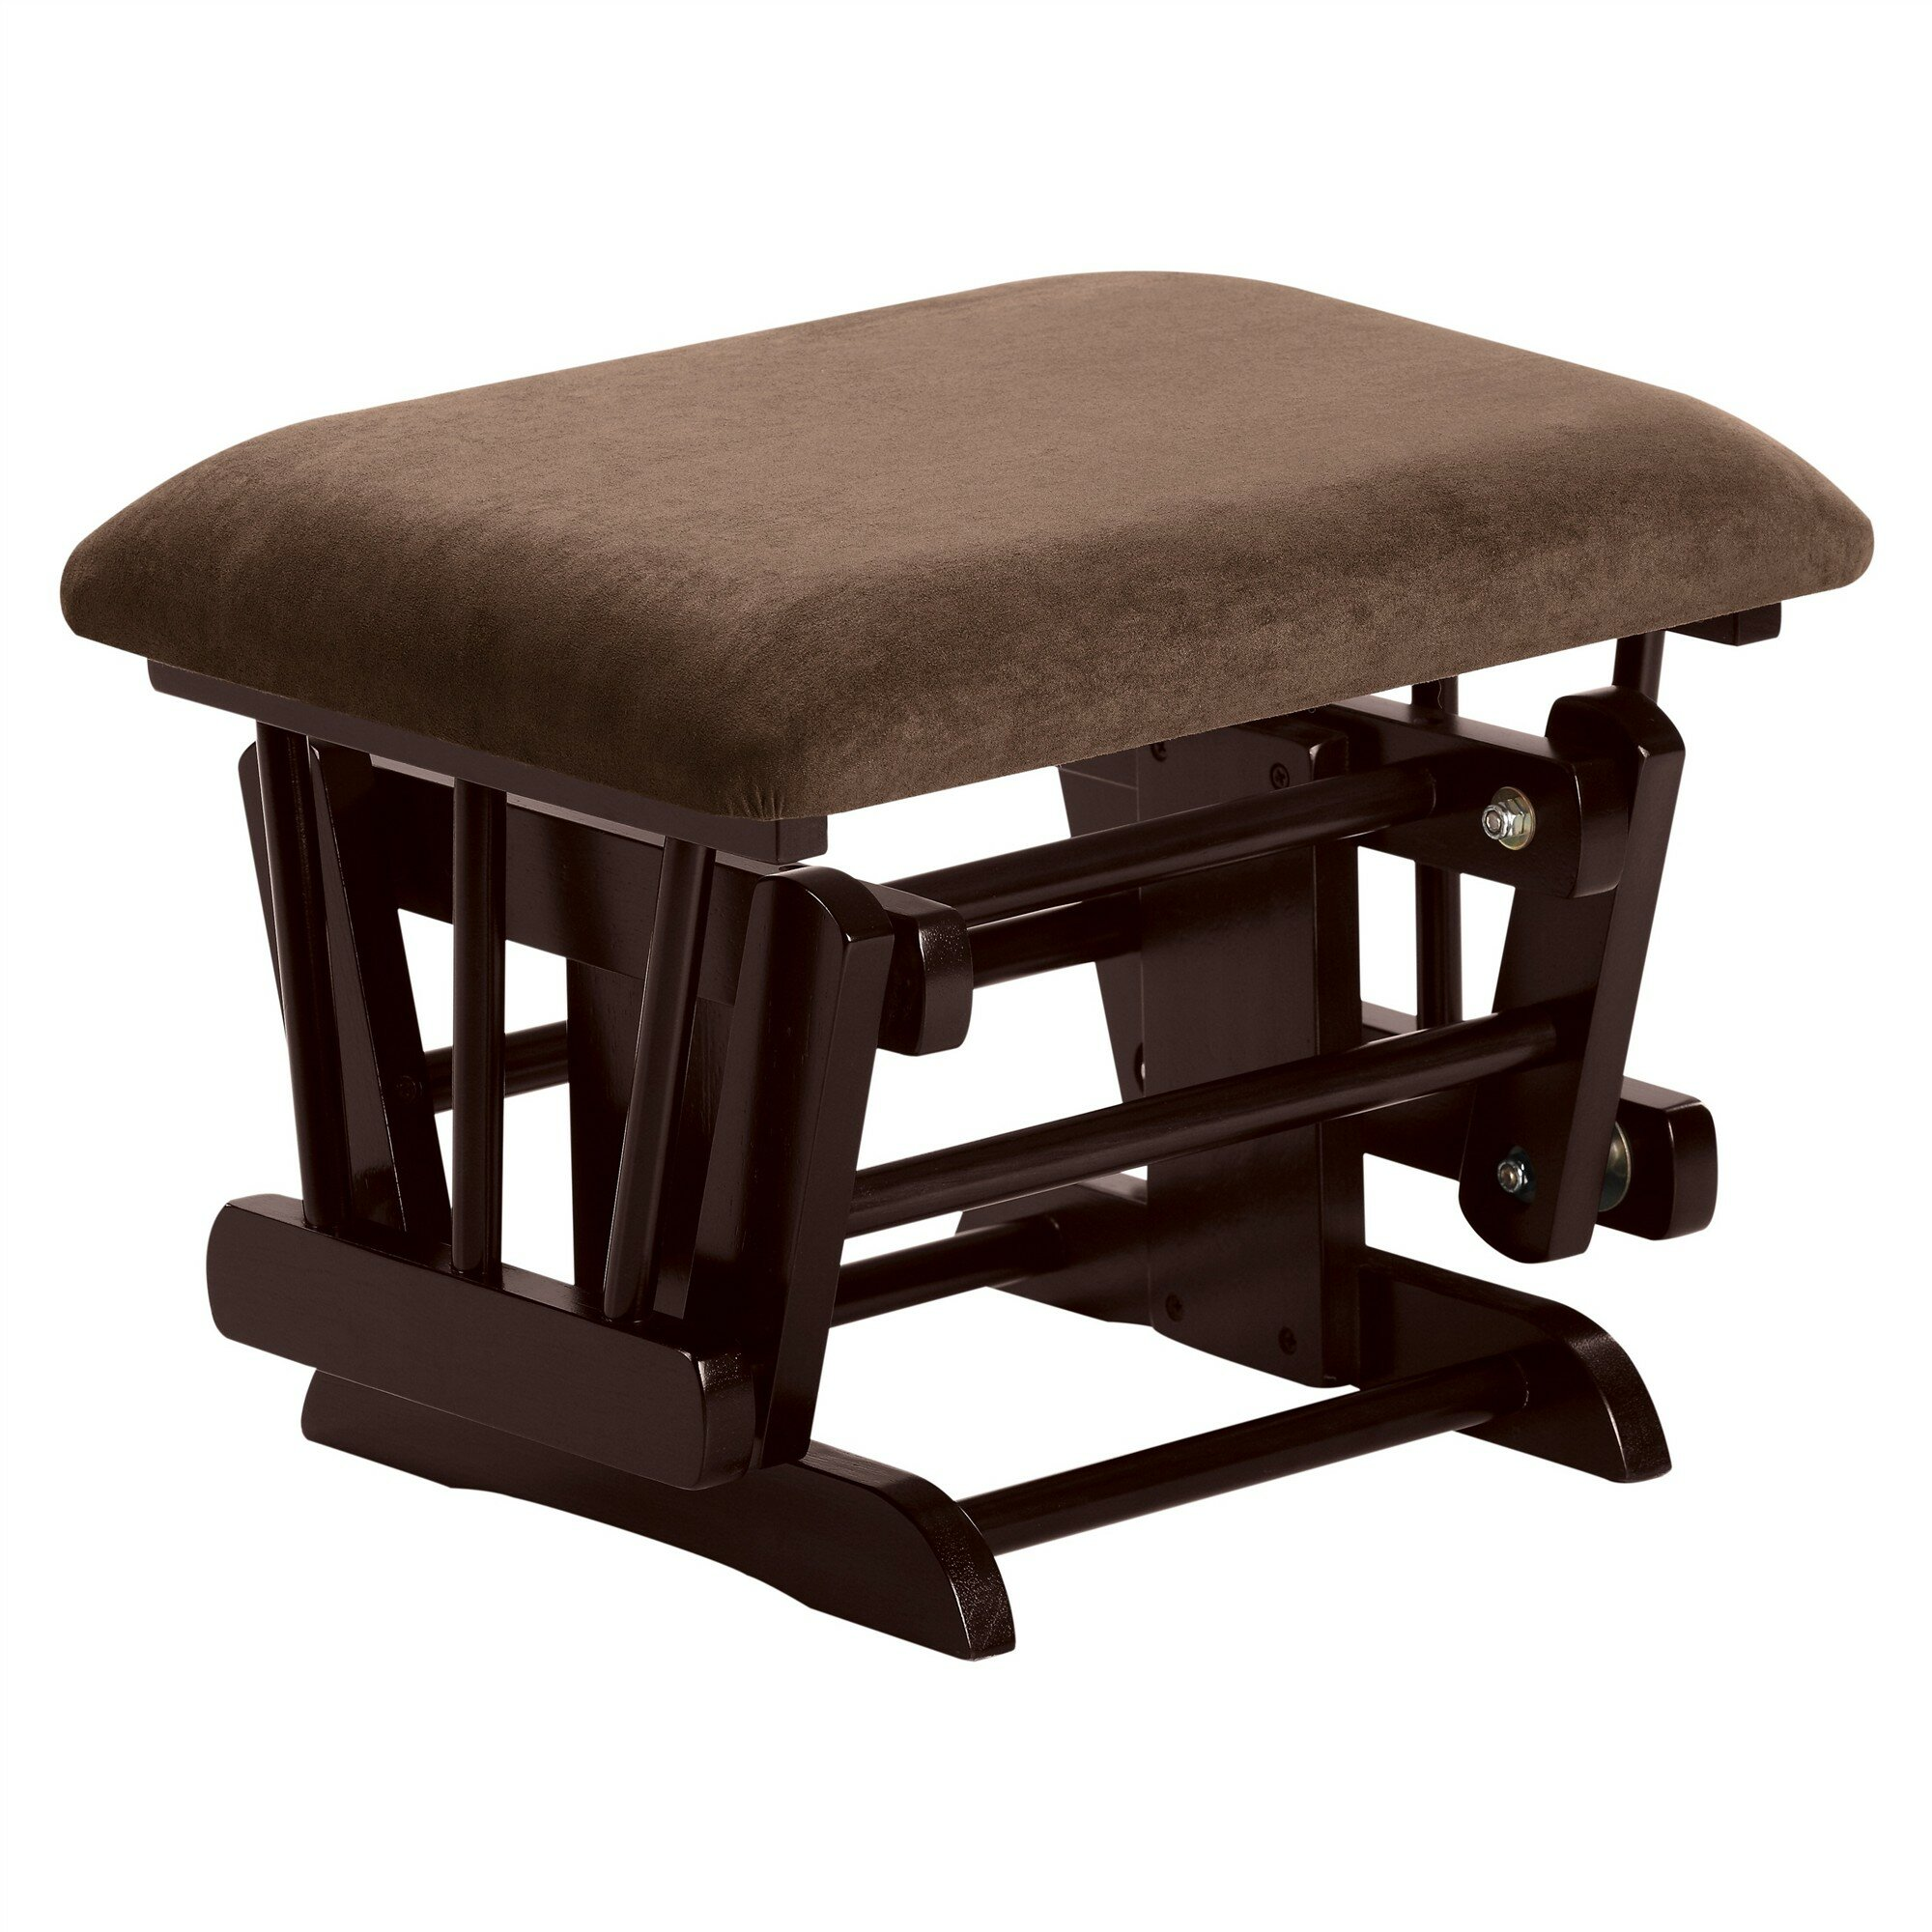 Superb img of  Shop Manufactured wood Gliders & Ottomans Baby Relax SKU: DRIA1084 with #291612 color and 2000x2000 pixels